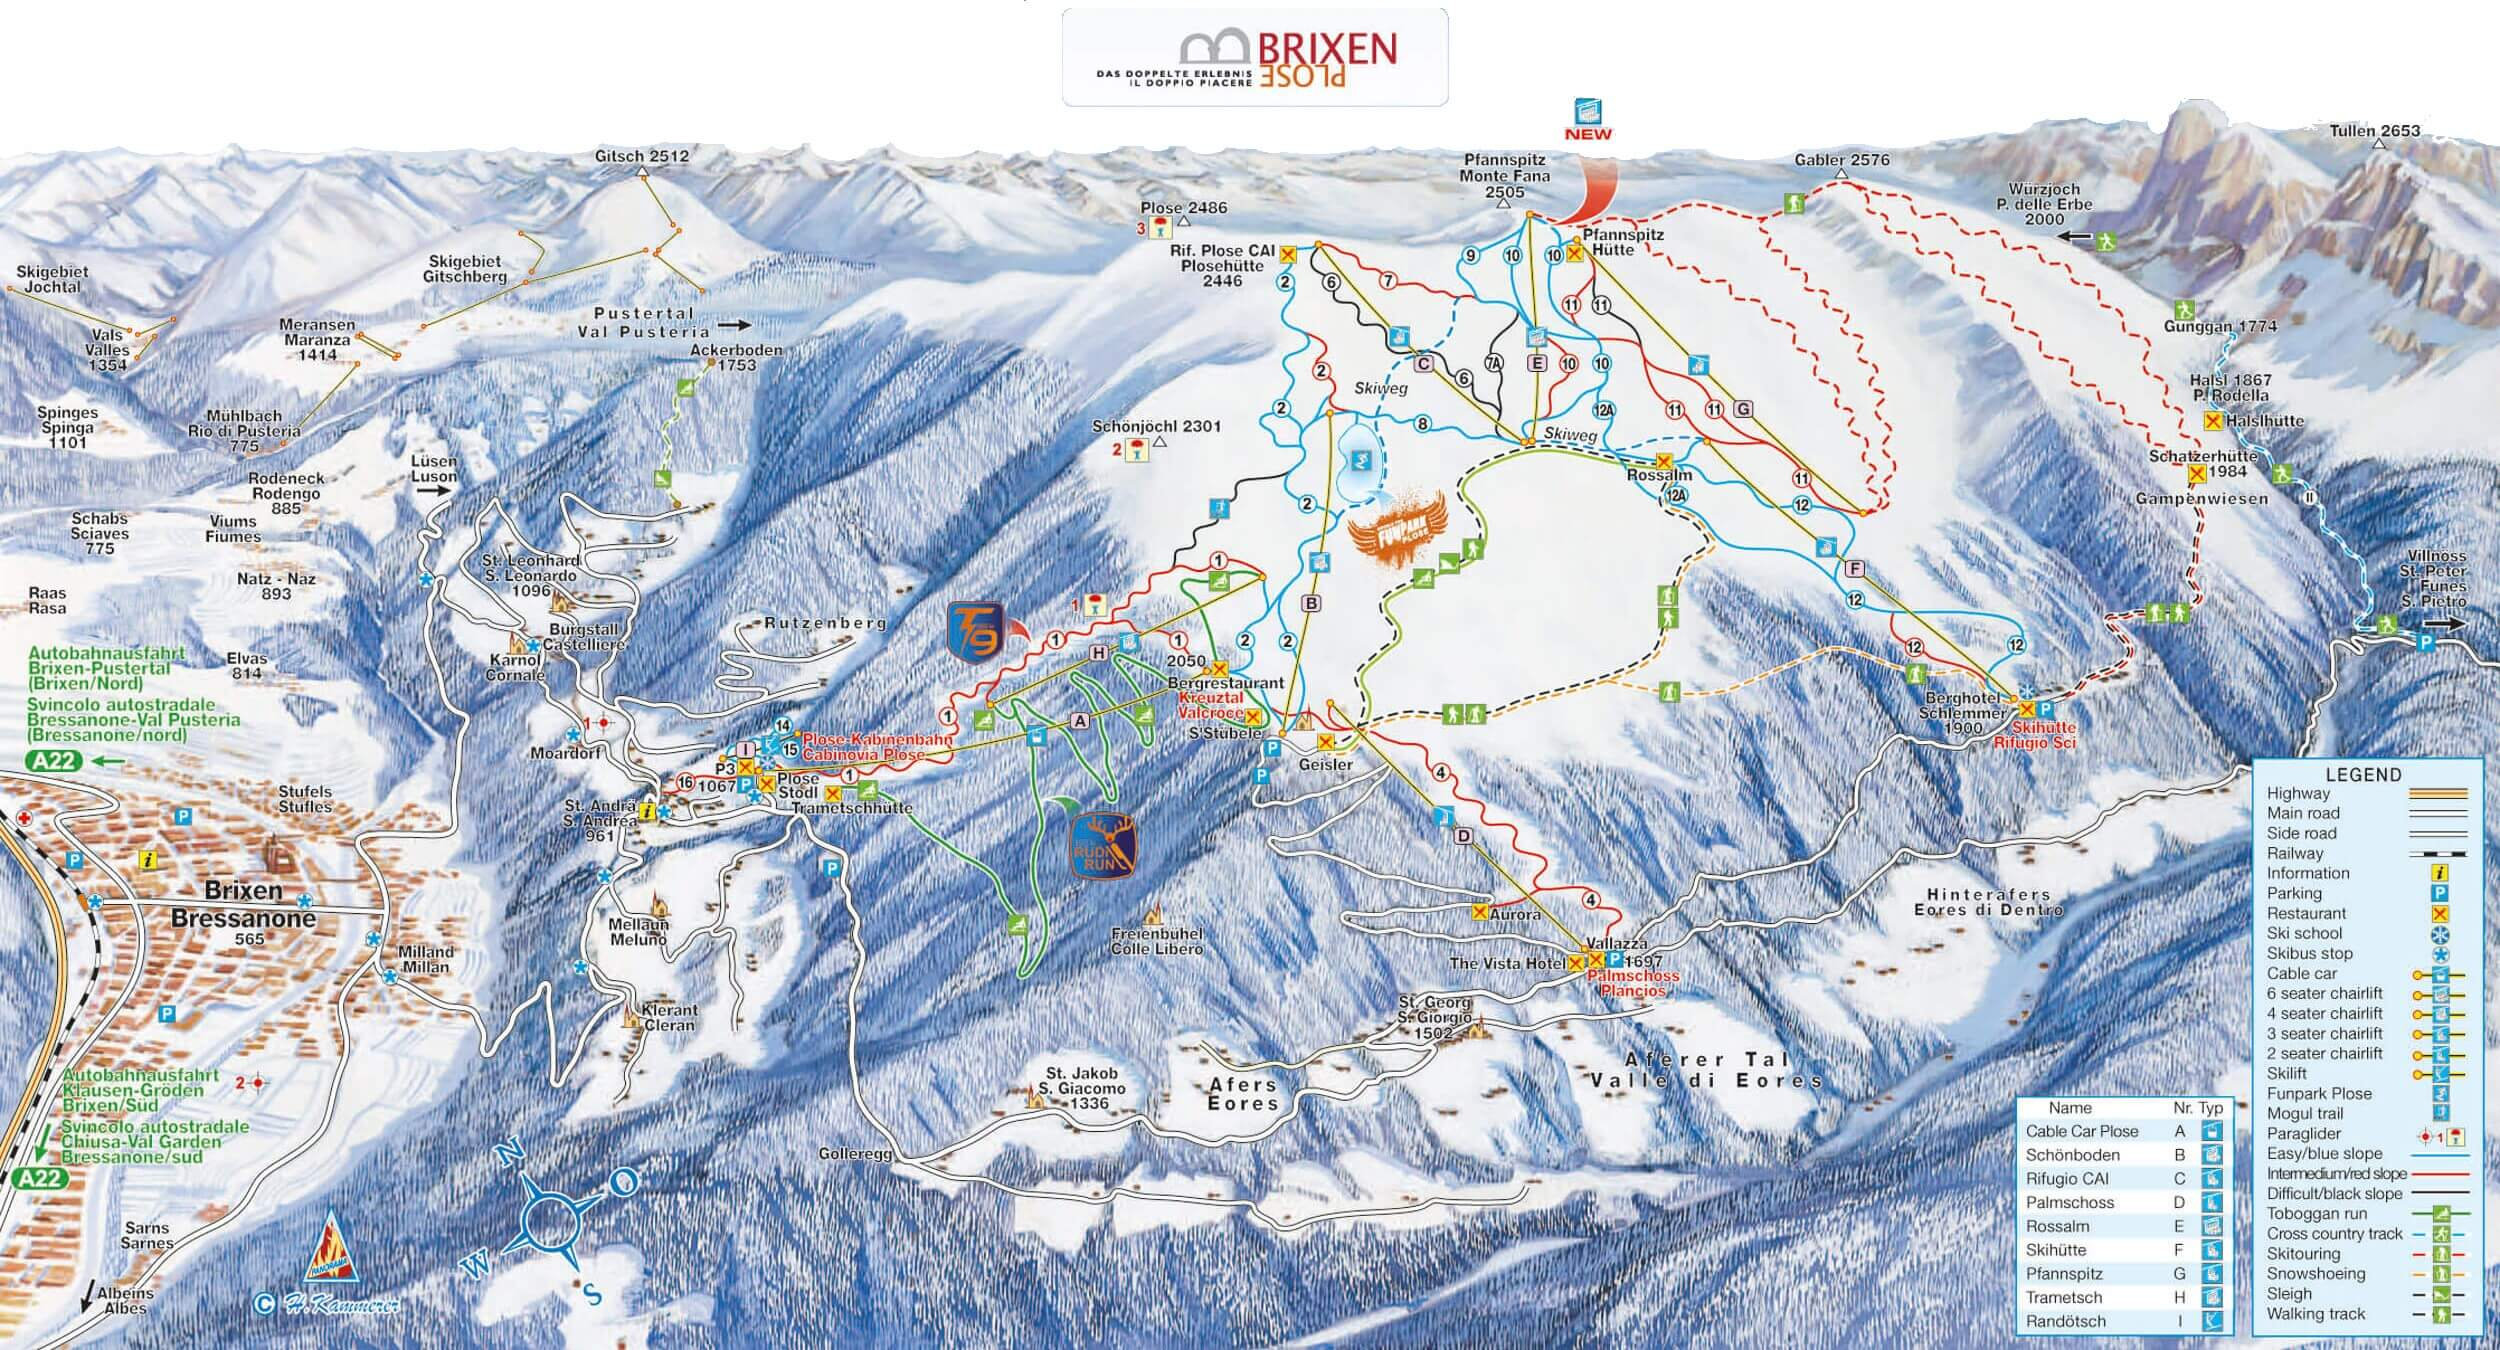 Brixen-Plose slopes